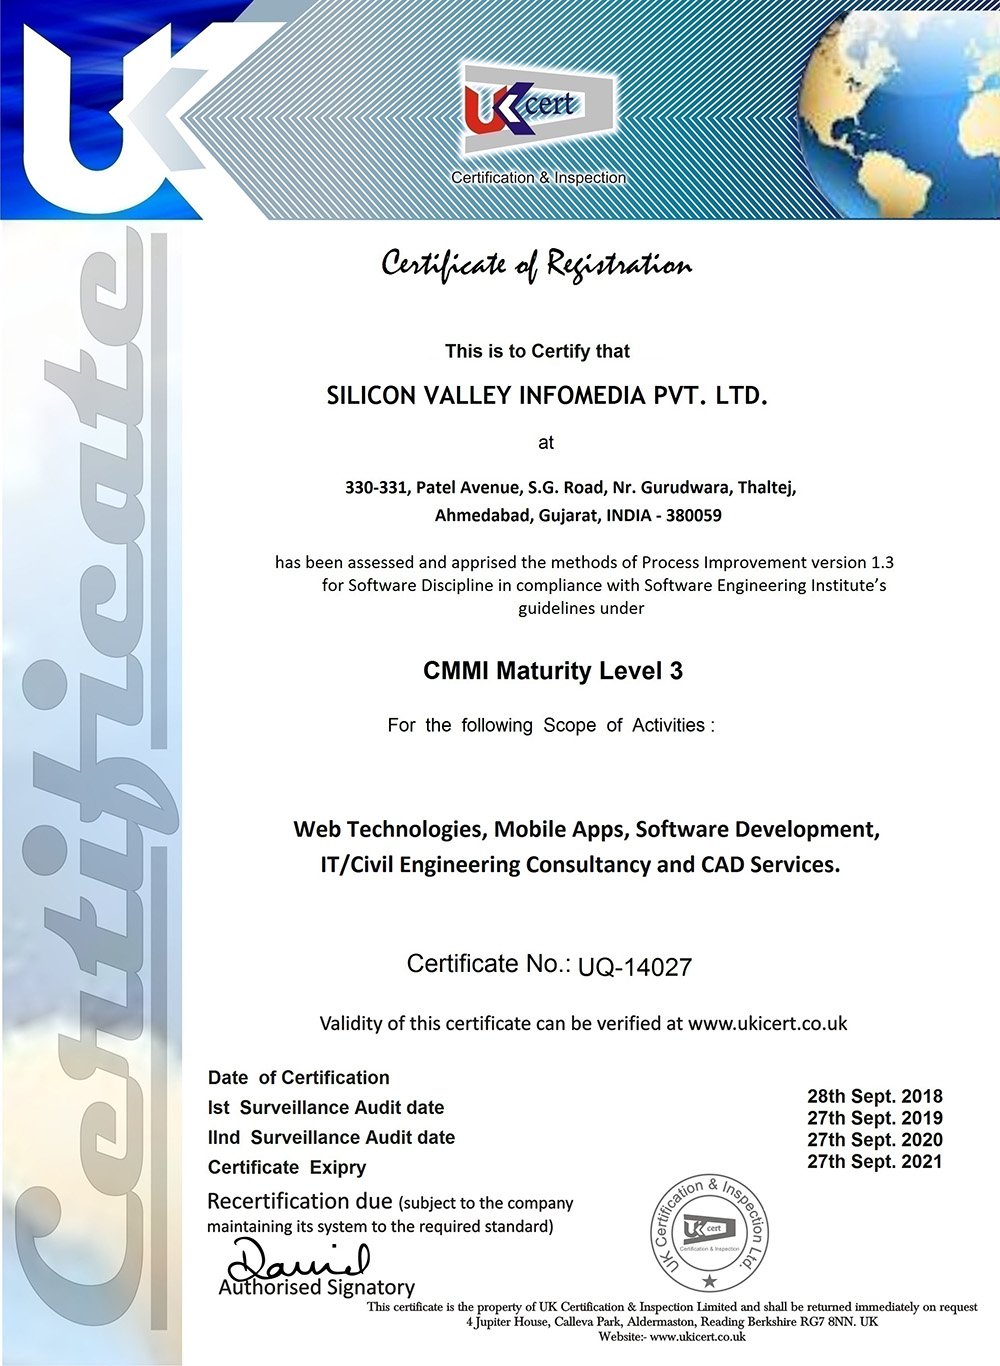 Silicon Valley Is An Iso27001 2005 Certified Company